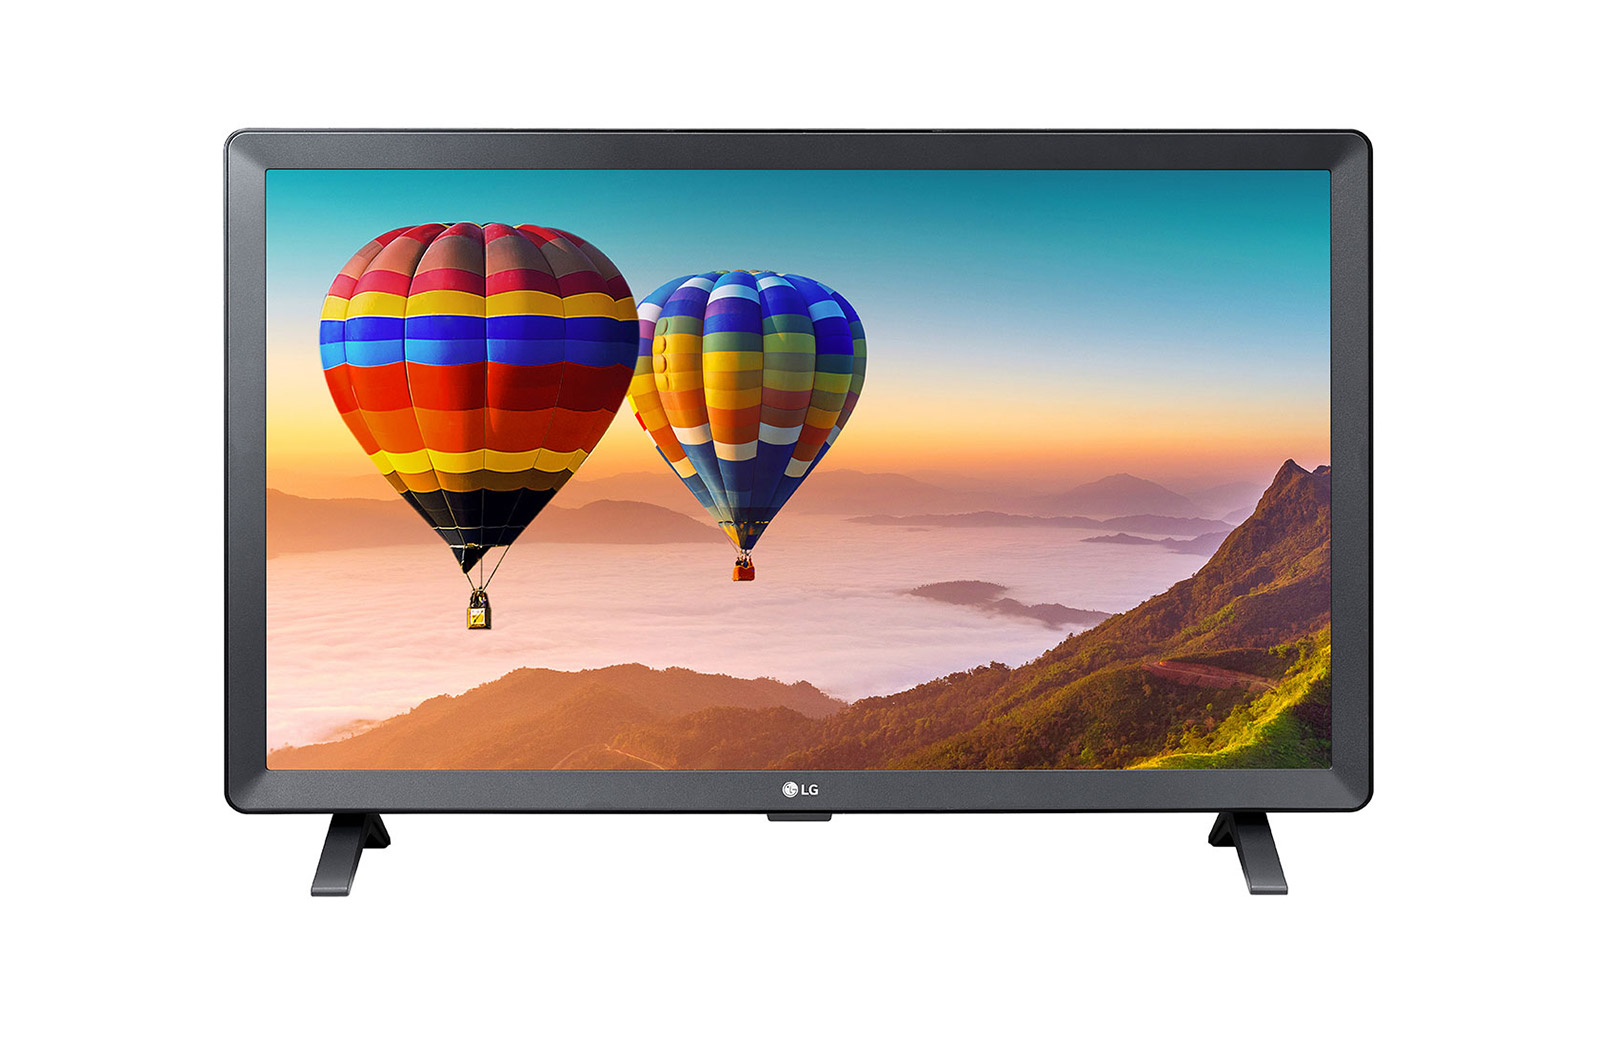 24'' LG LED 24TN520S - HD ready,DVB-T2/C/S2,smart